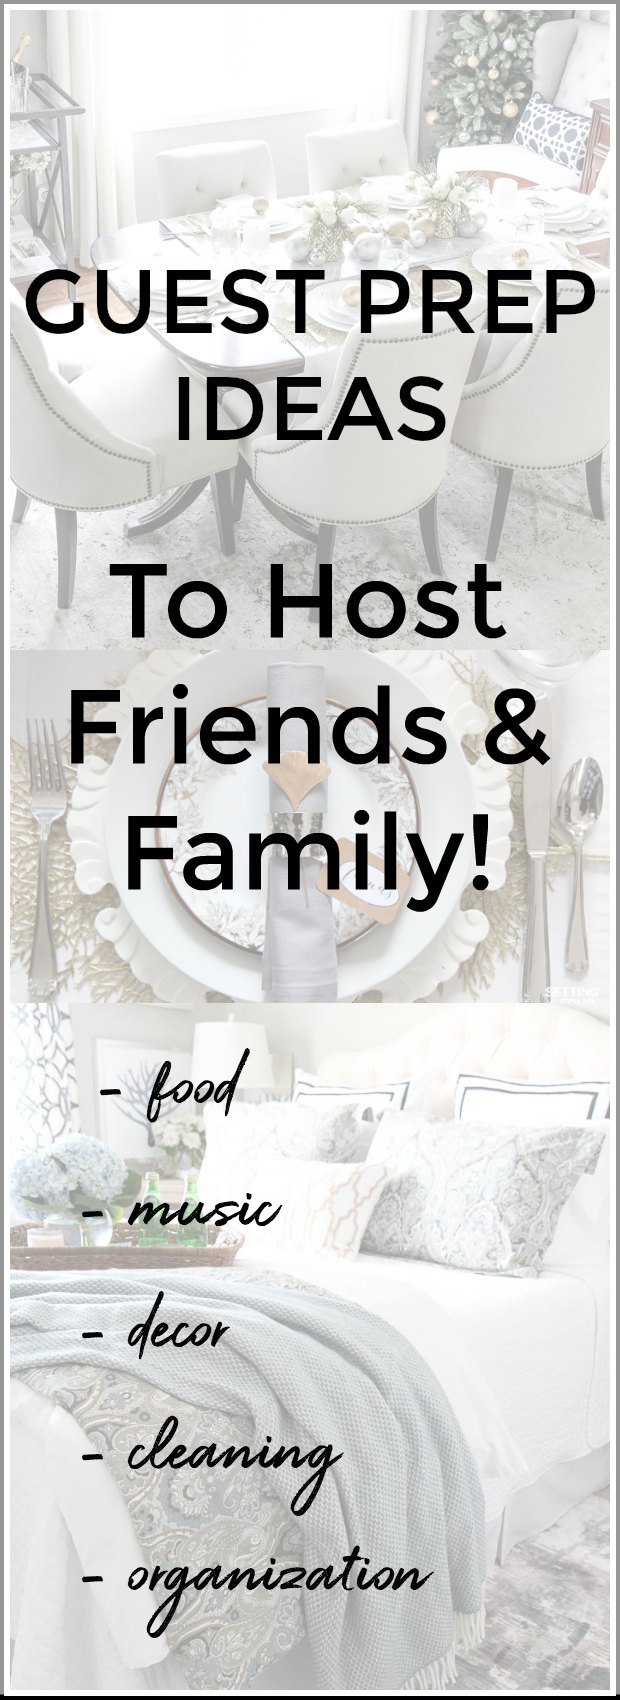 Guest Preparation Ideas To Host Friends & Family #guests #entertaining #holiday #party #decor #music #cleaning #organization #shopping #sale